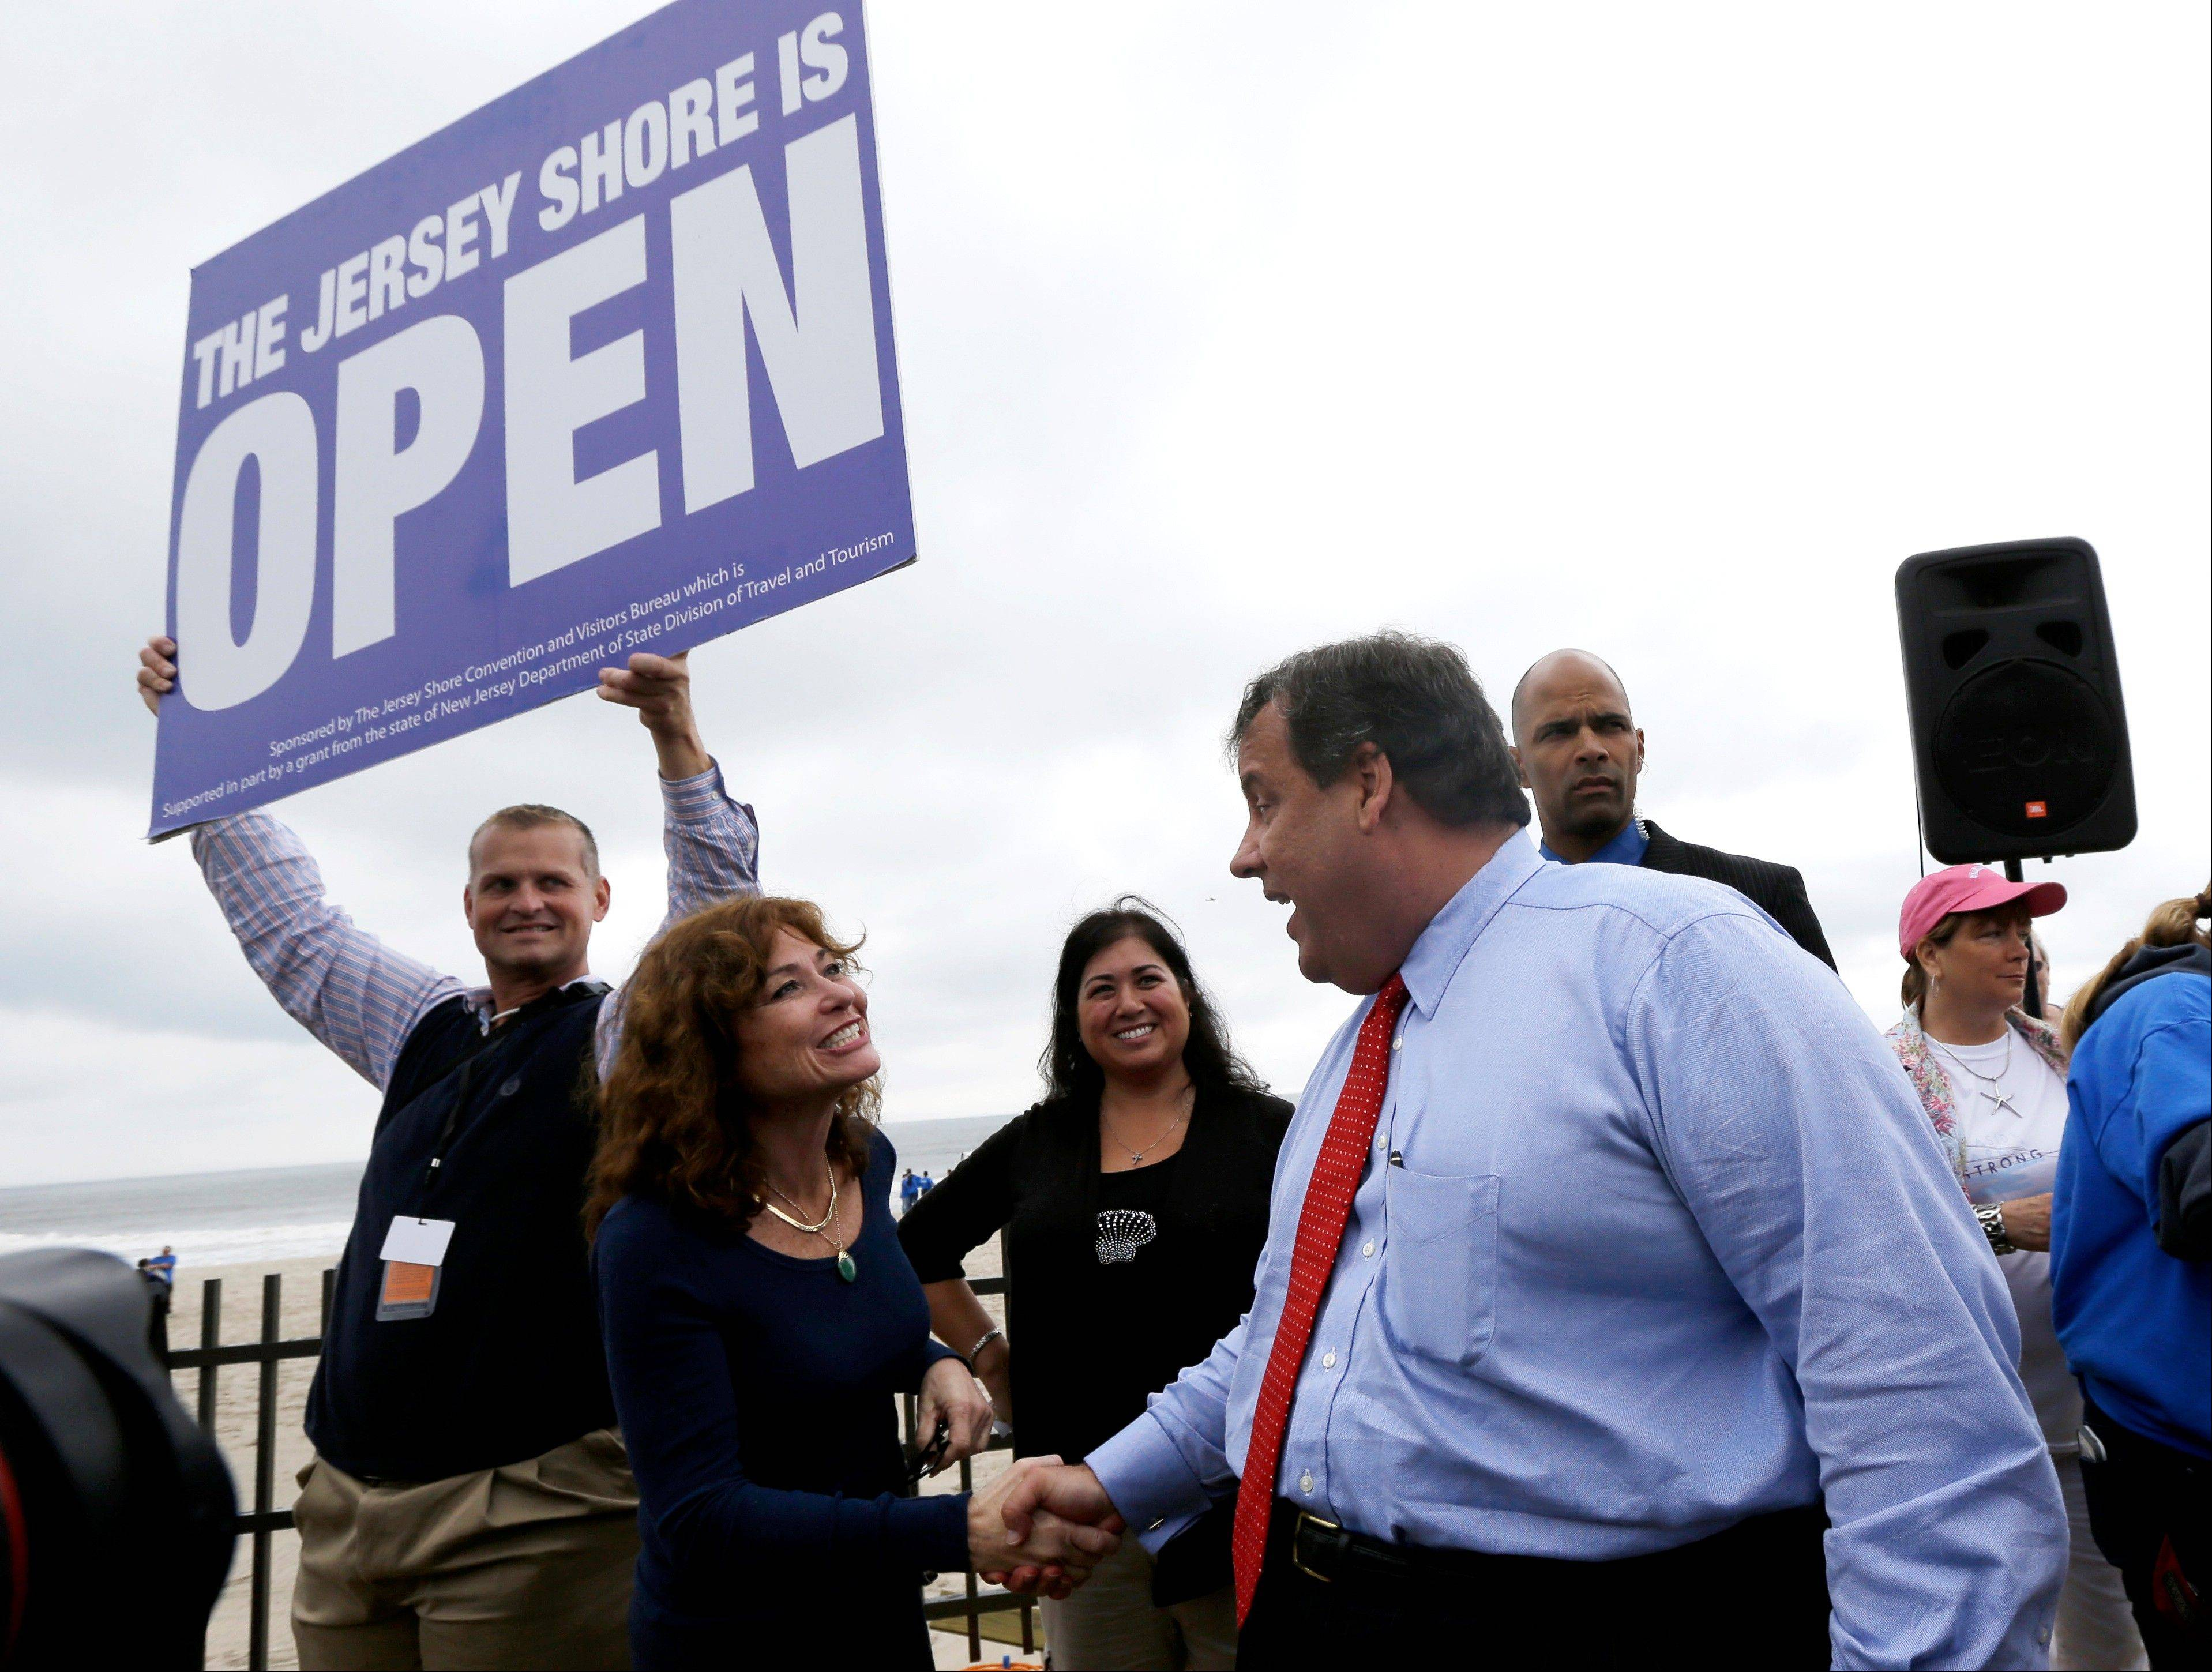 New Jersey Gov. Chris Christie, right, talks to Carla Pilla, of Seaside Heights, N.J., while Robert Hilton, left, executive director of the Jersey Shore Convention and Visitor's Bureau, holds a sign, Friday, May 24, 2013, in Seaside Heights, N.J. Christie cut a ribbon to symbolically reopen the state's shore for the summer season, seven months after being devastated by Superstorm Sandy.